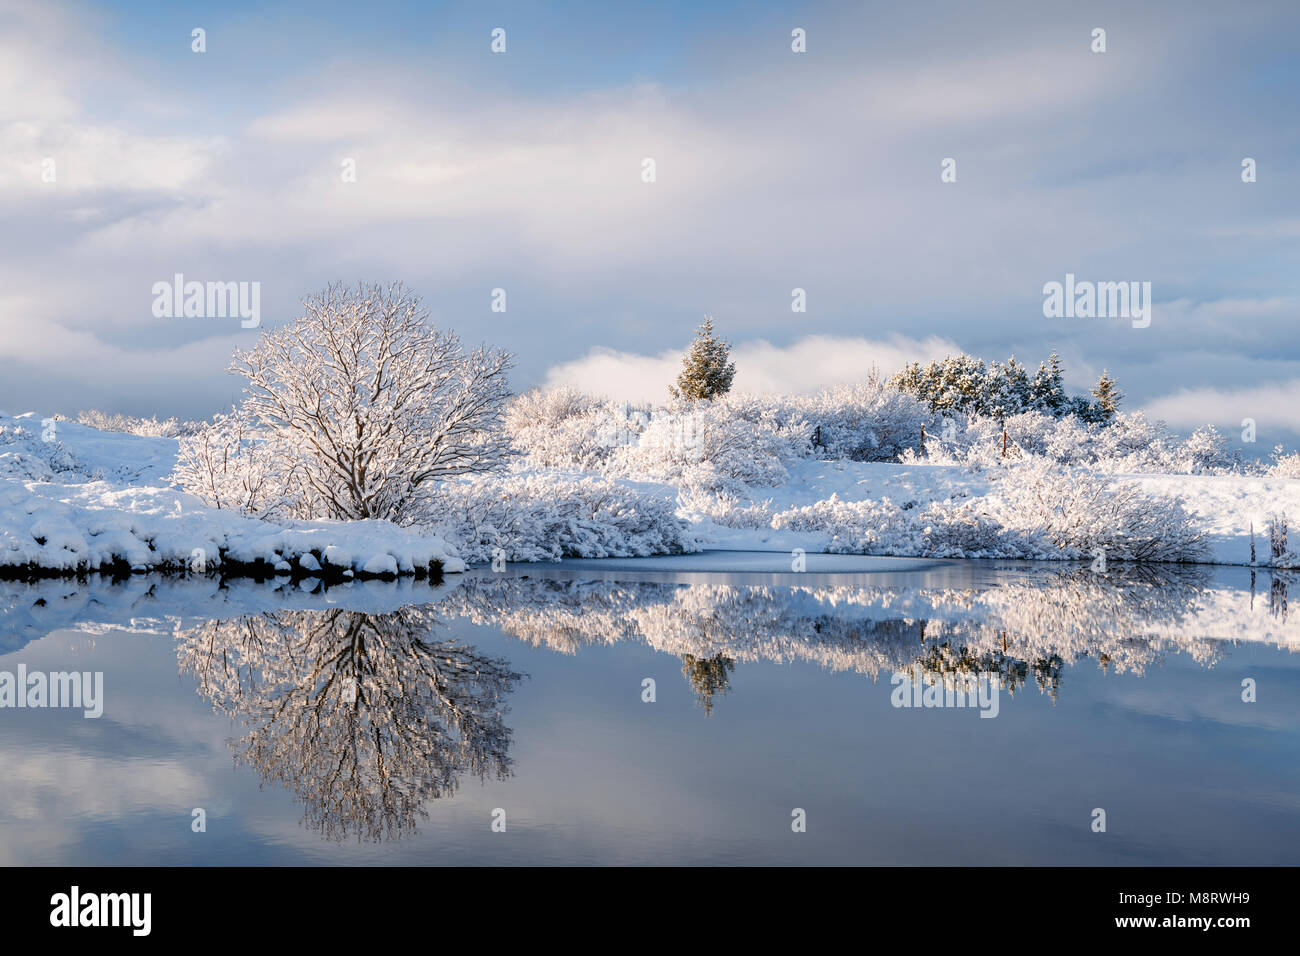 Idyllic view of snow covered dried plants by lake against cloudy sky - Stock Image